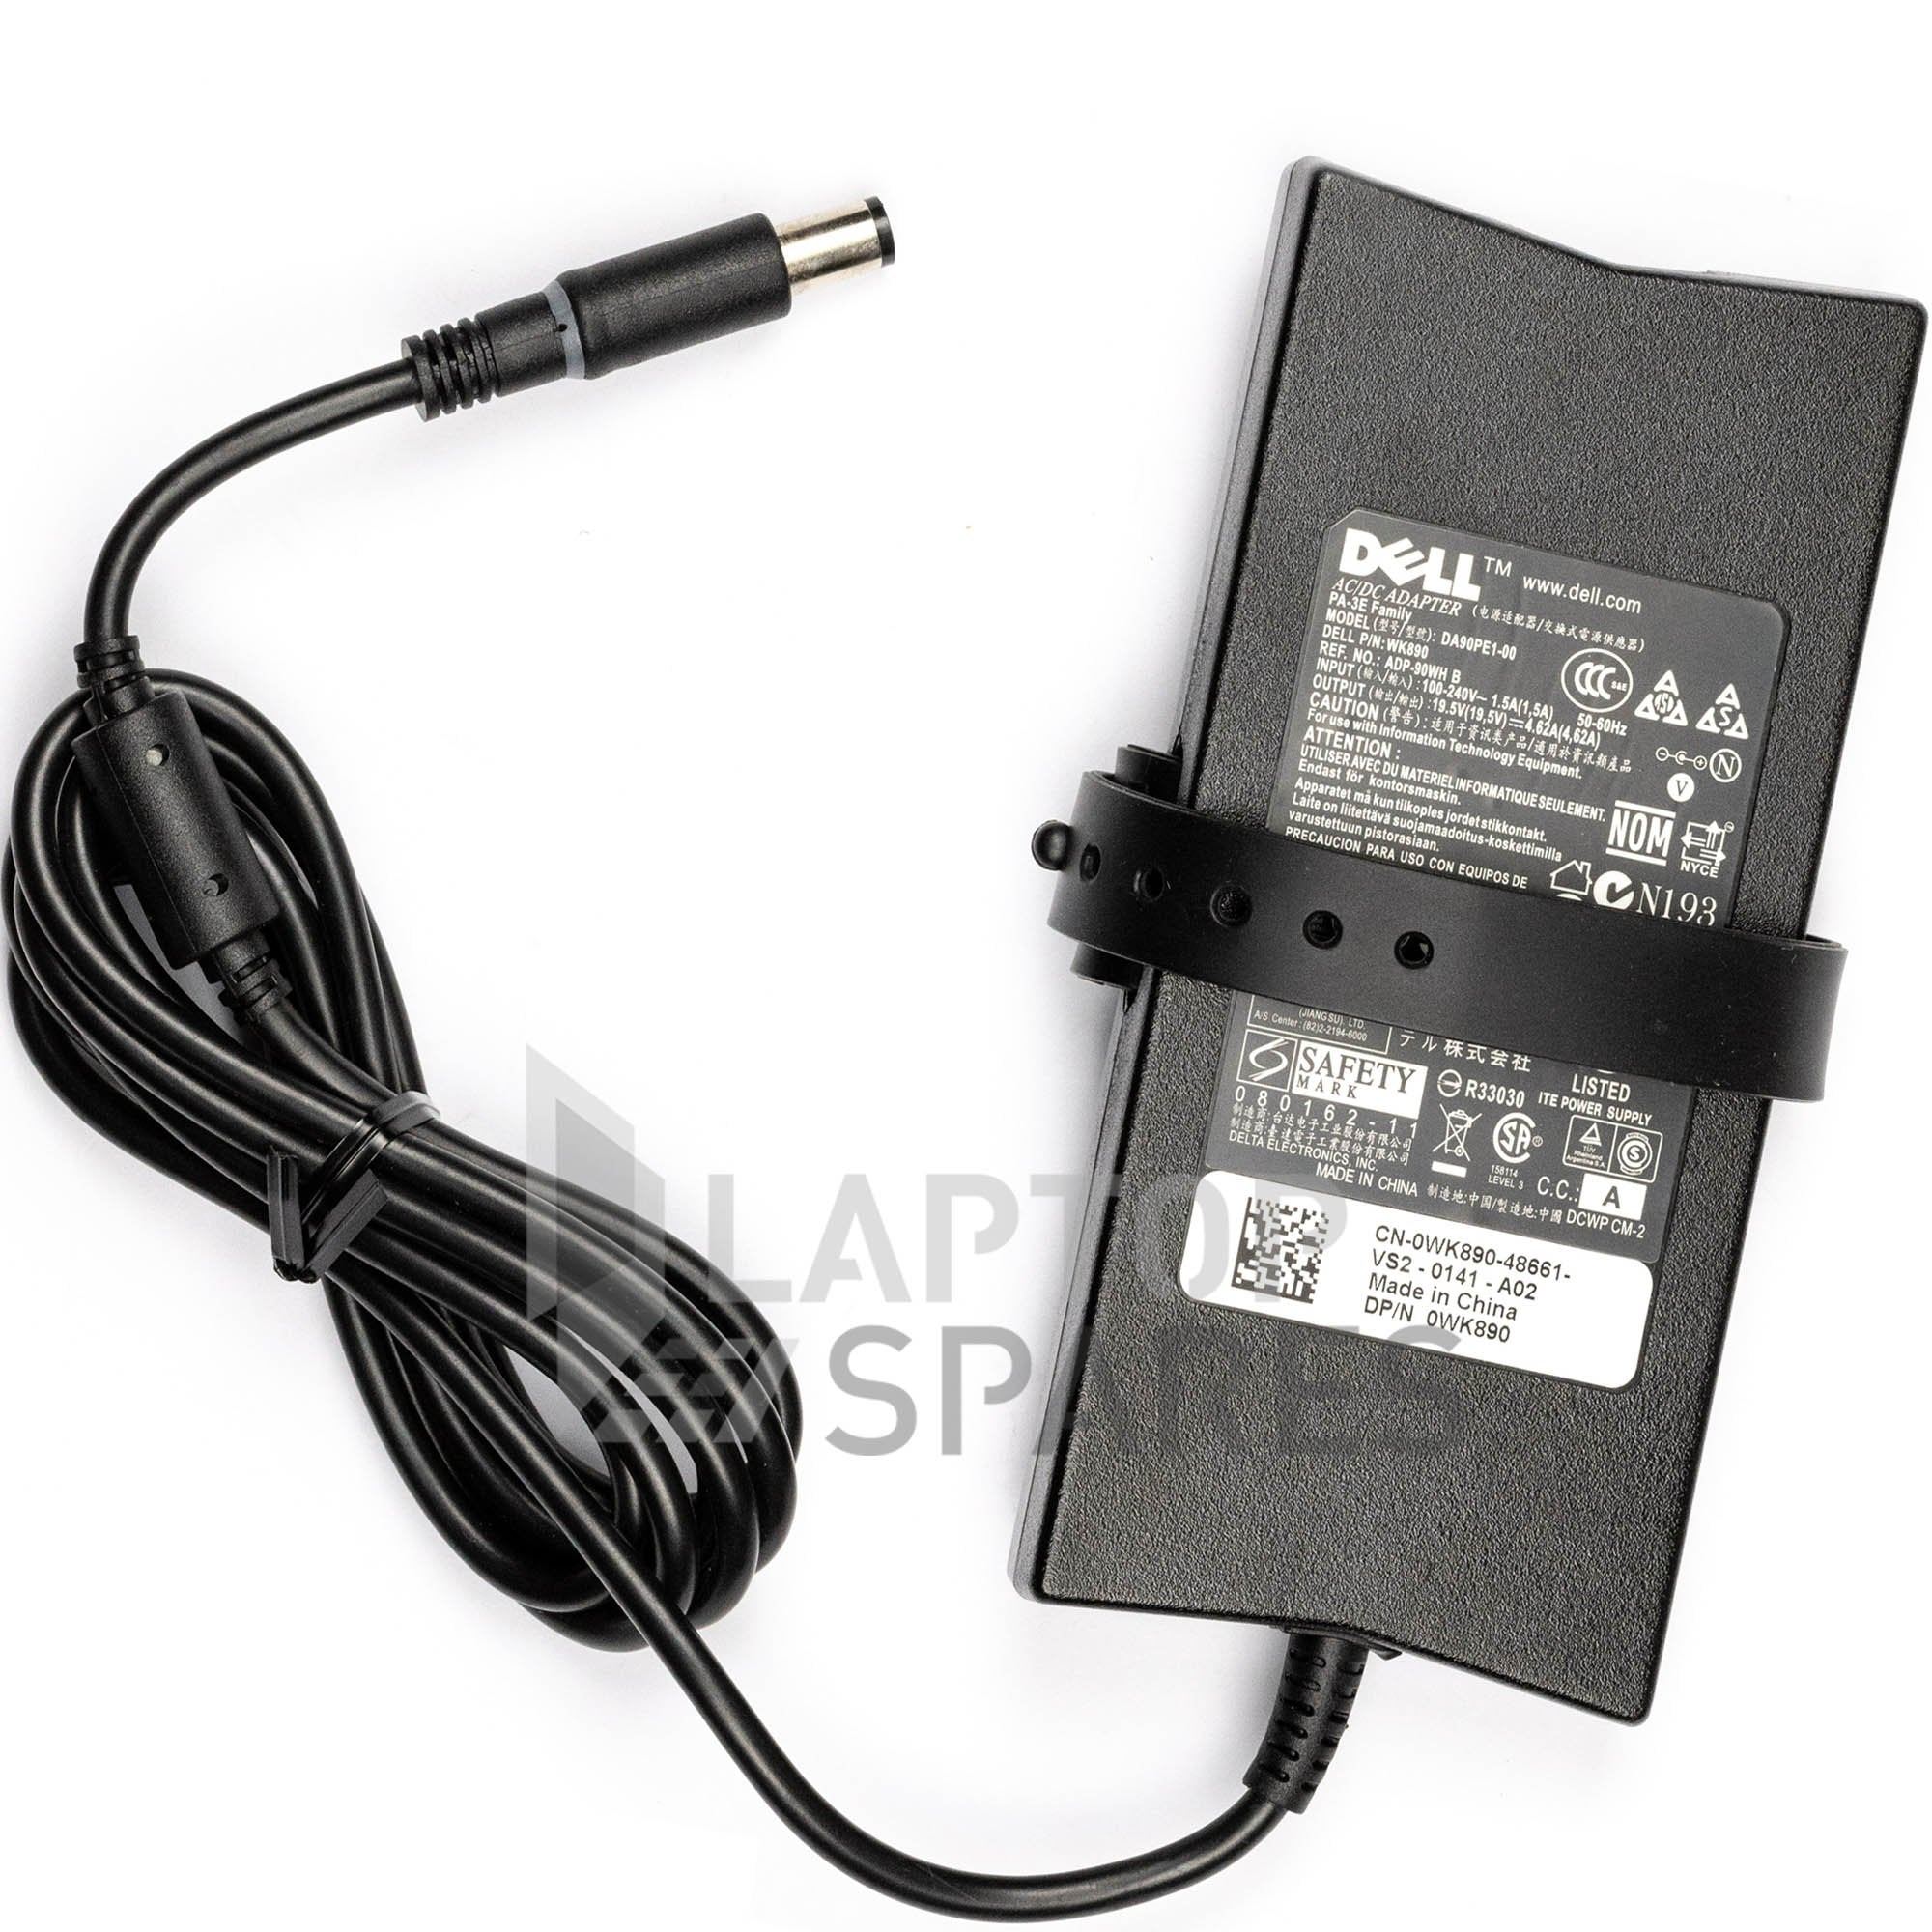 Dell Latitude D800 D810 D810u Laptop Slim AC Adapter Charger